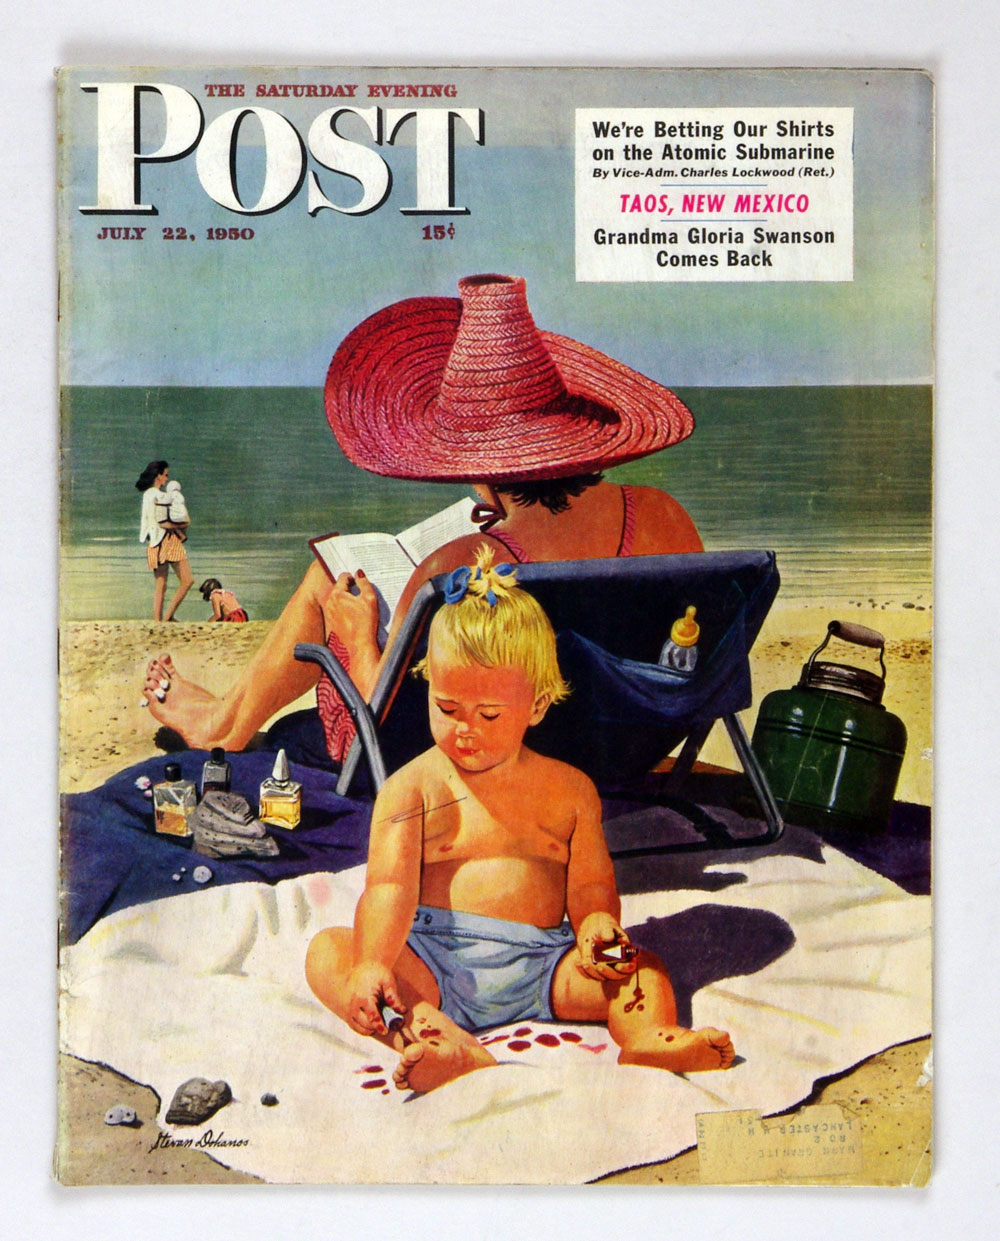 The Saturday Evening Post 1950 Jul 22 Baby on the Beach